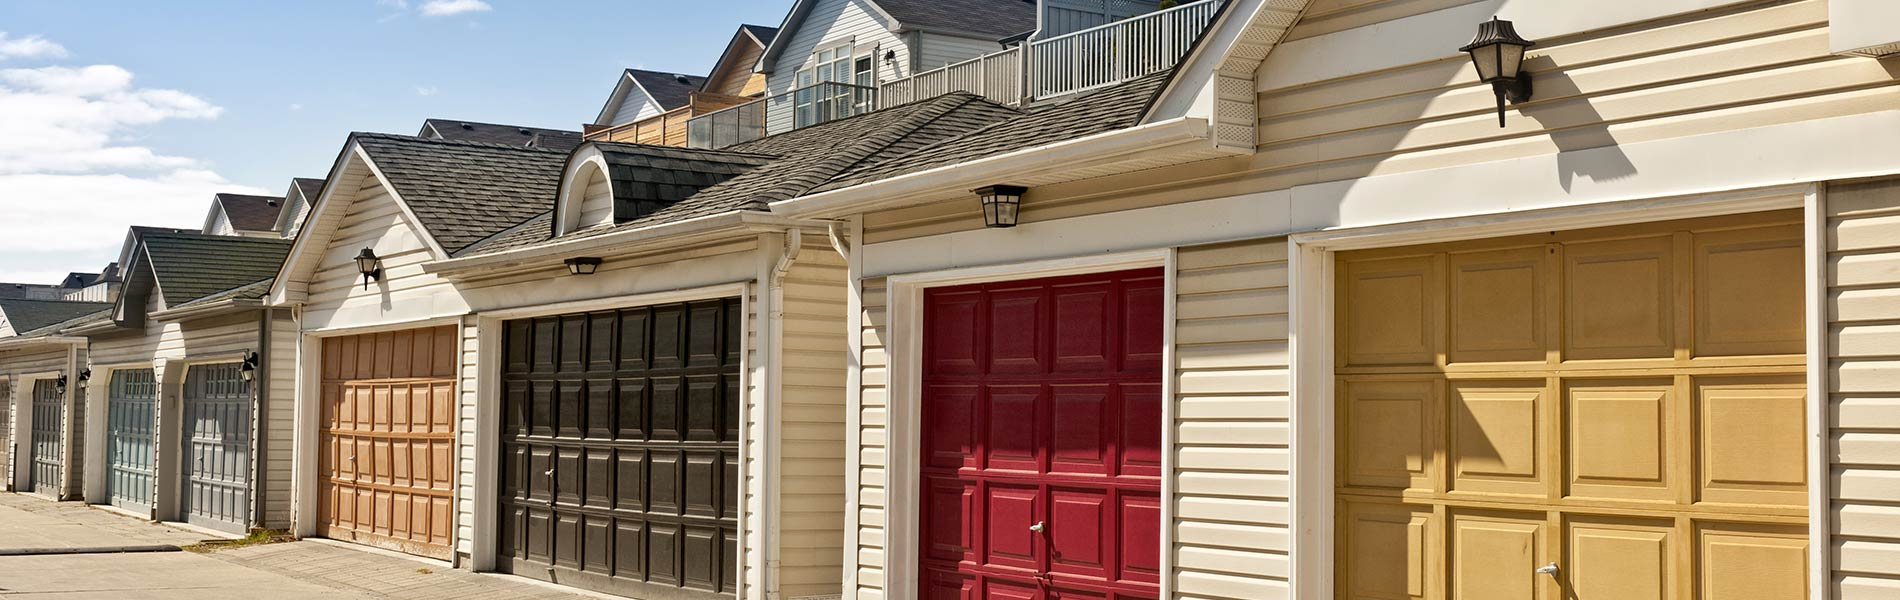 Interstate Garage Door Service, Locust Valley, NY 516-629-0701